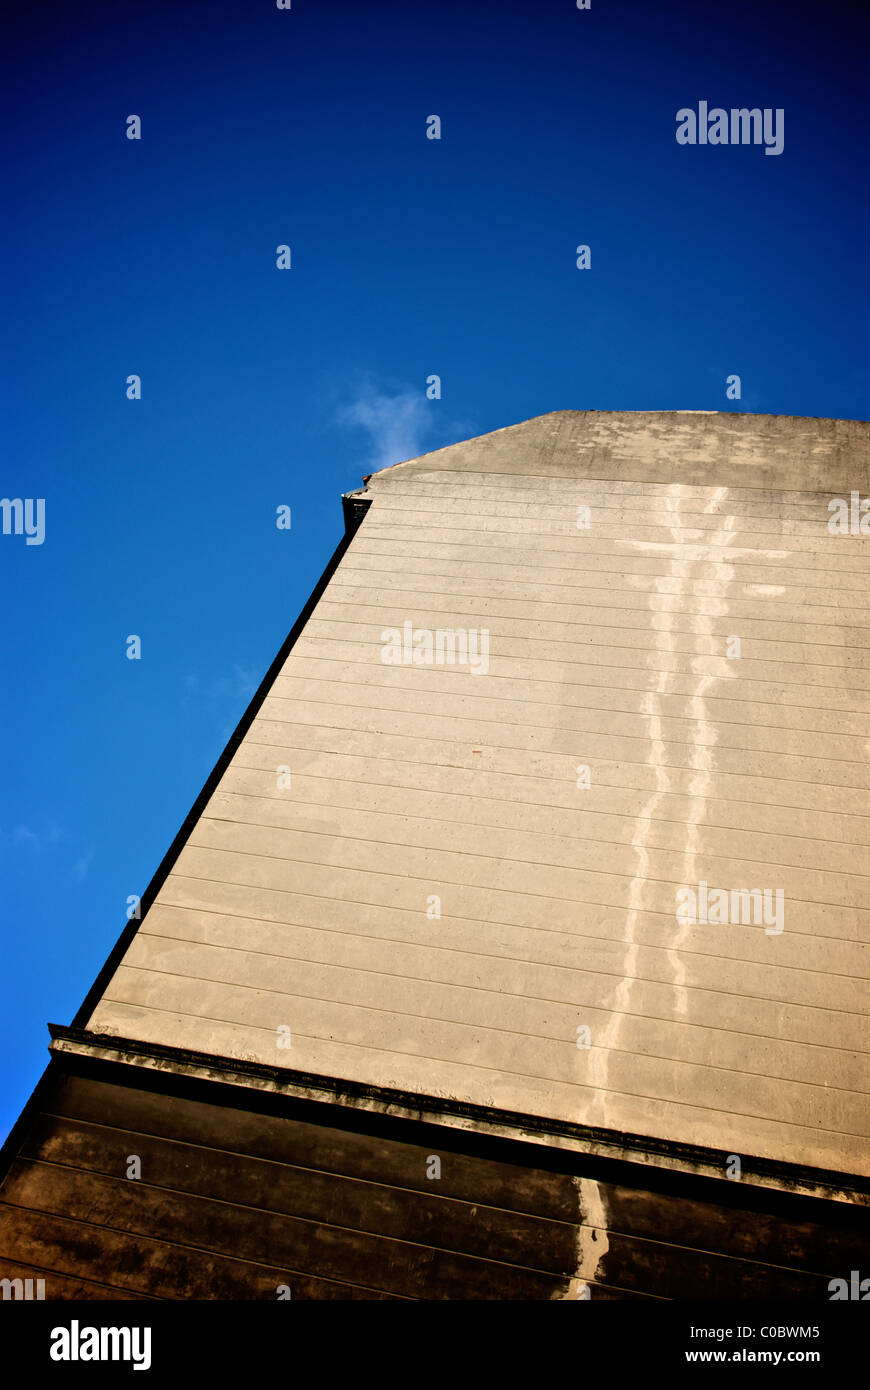 OLD WORN GABLE - Stock Image